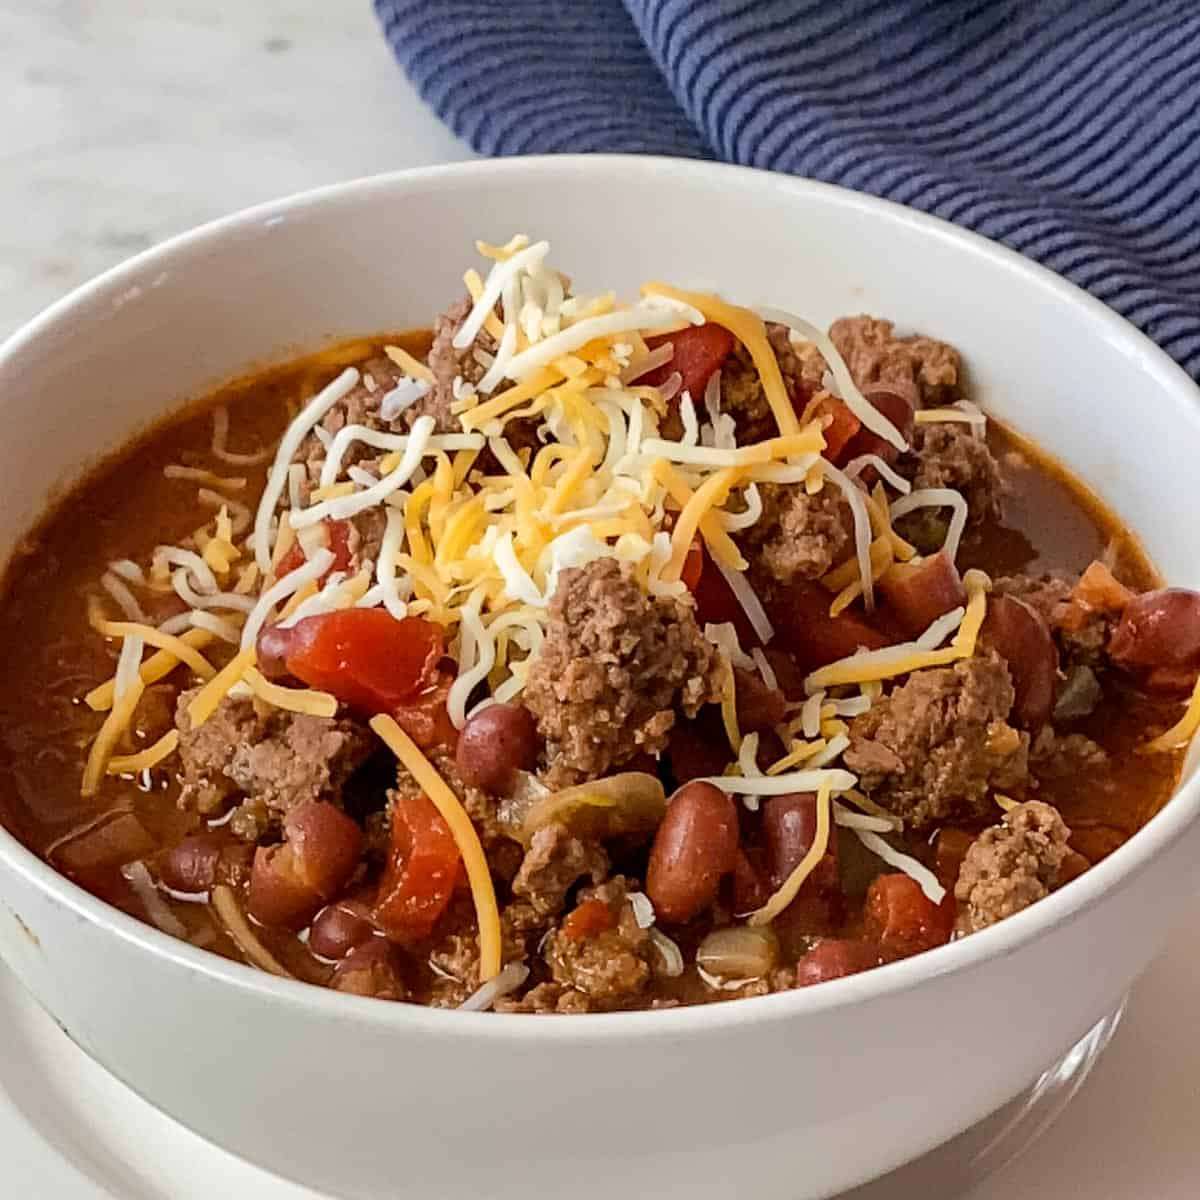 Bowl of Ground Bison Chili Recipe with a navy colored napkin in upper right corner.